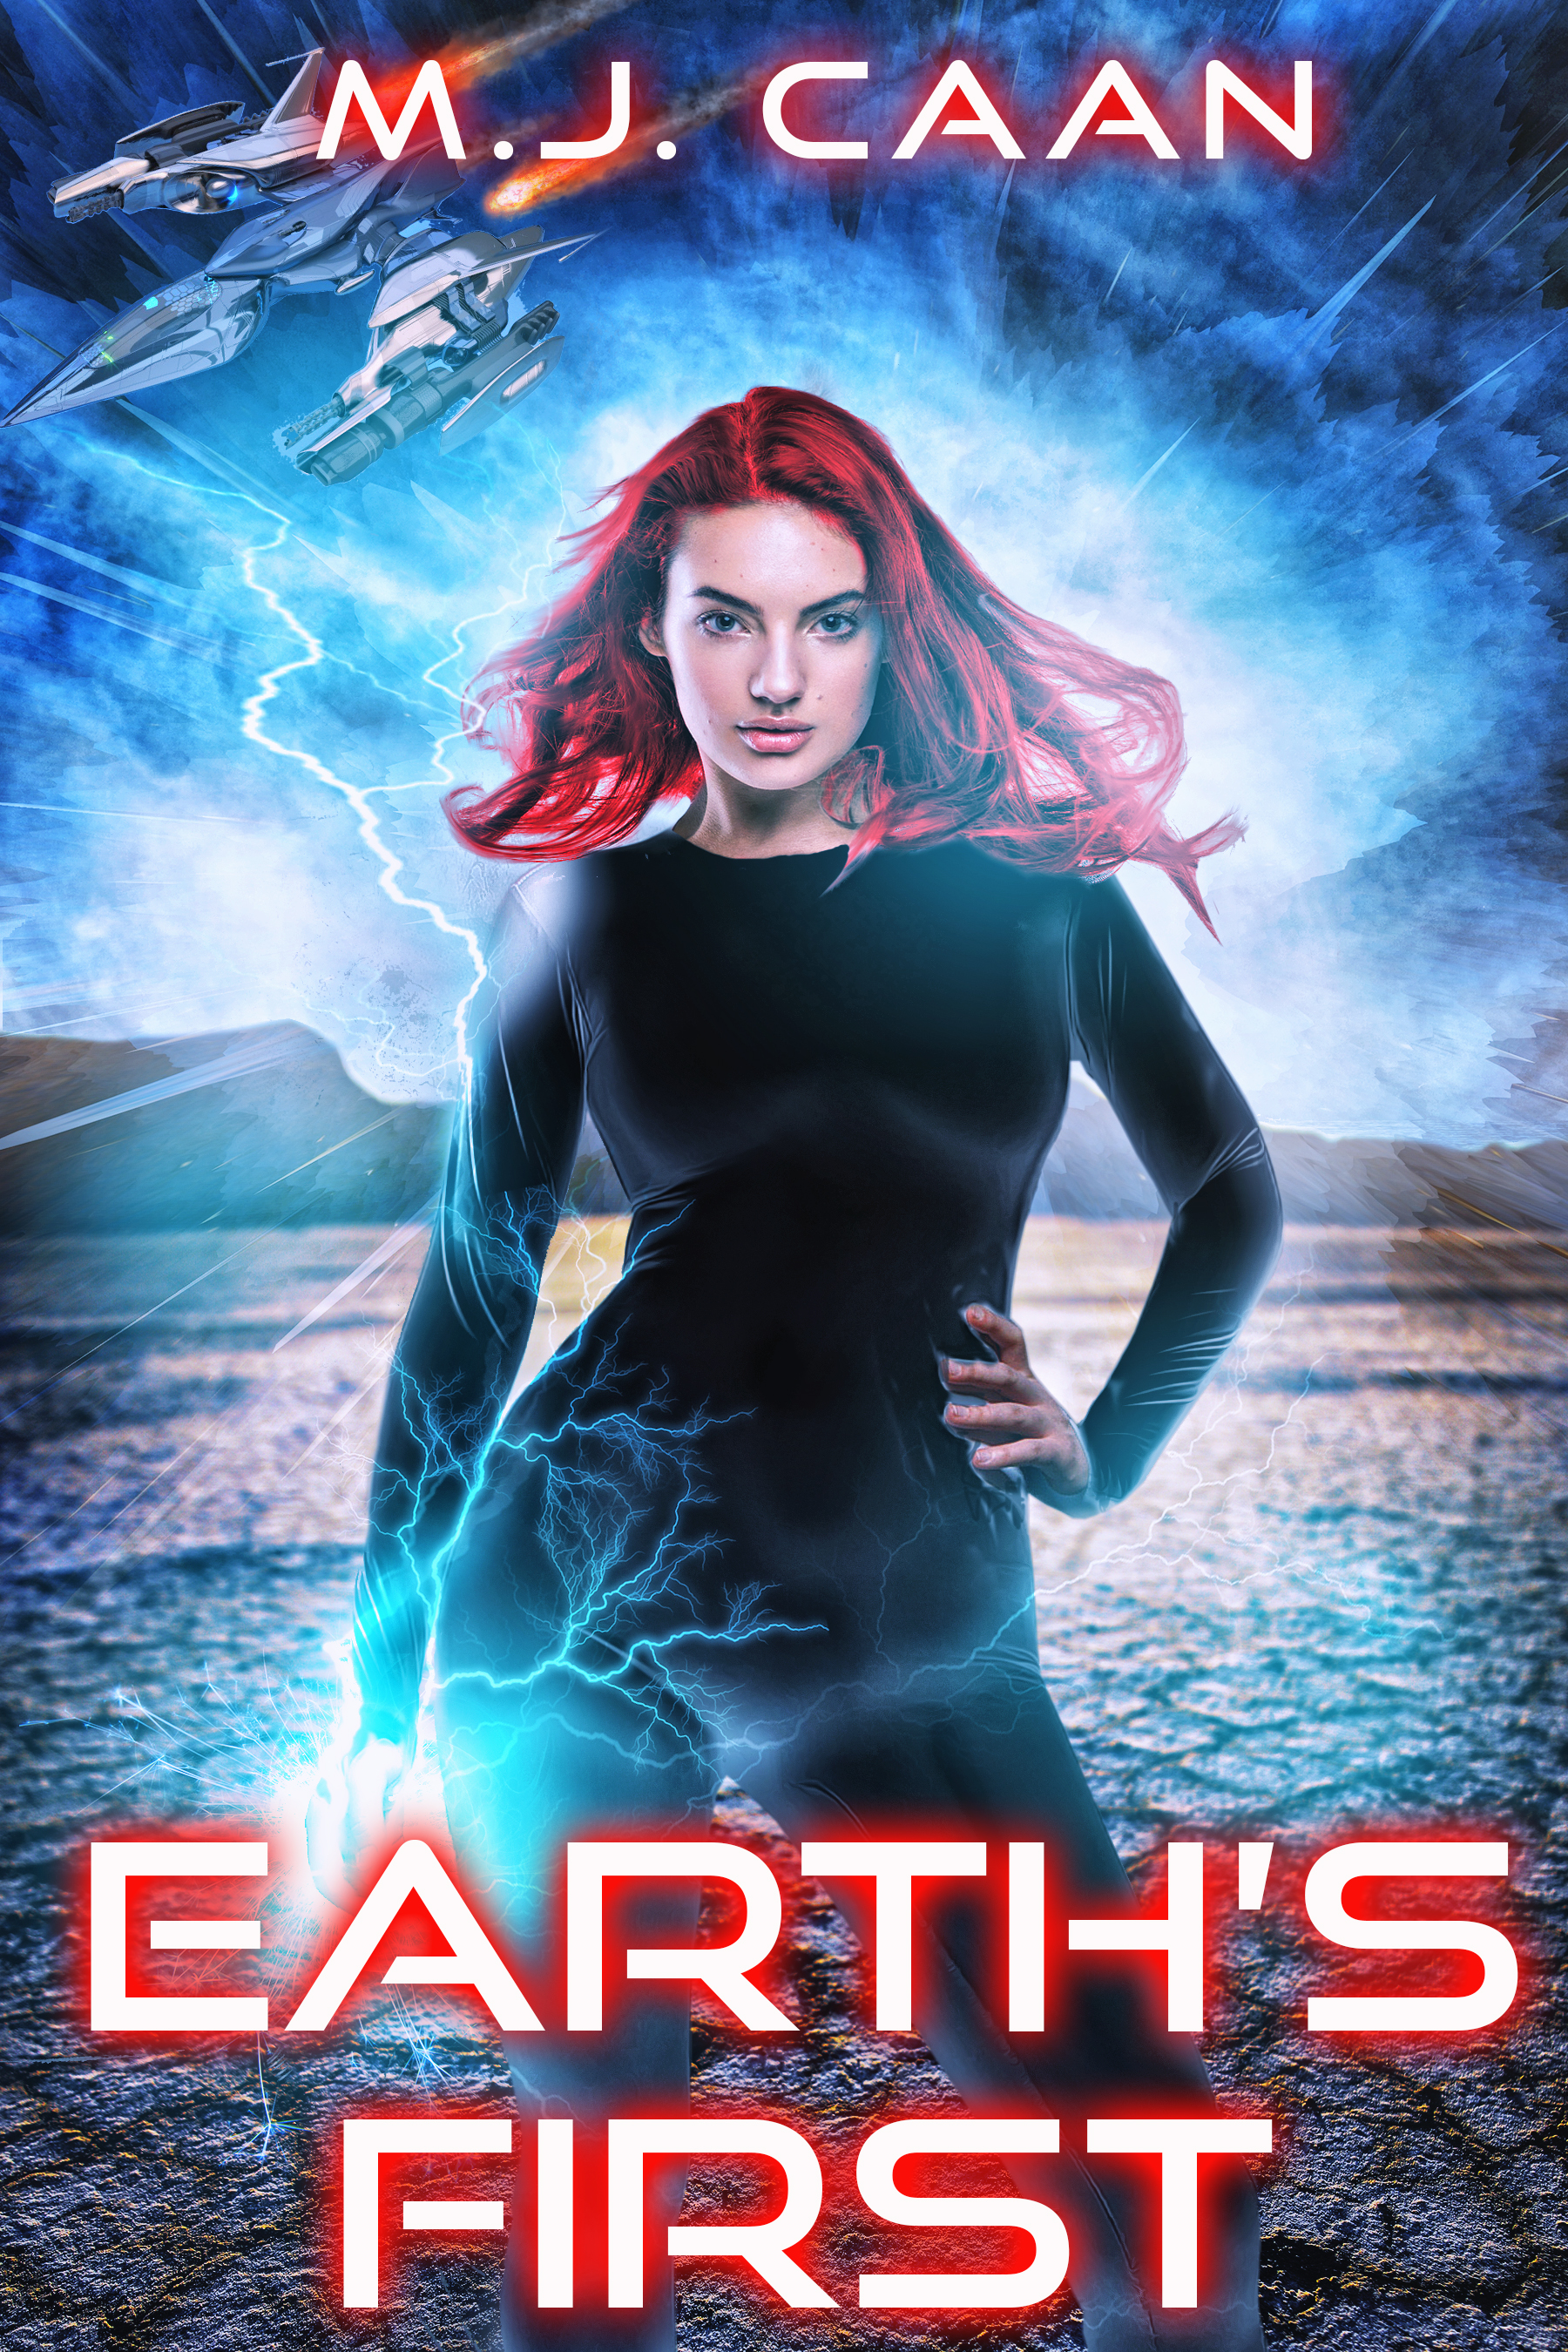 Earth's First - MJ Caan - new head - red text.jpg